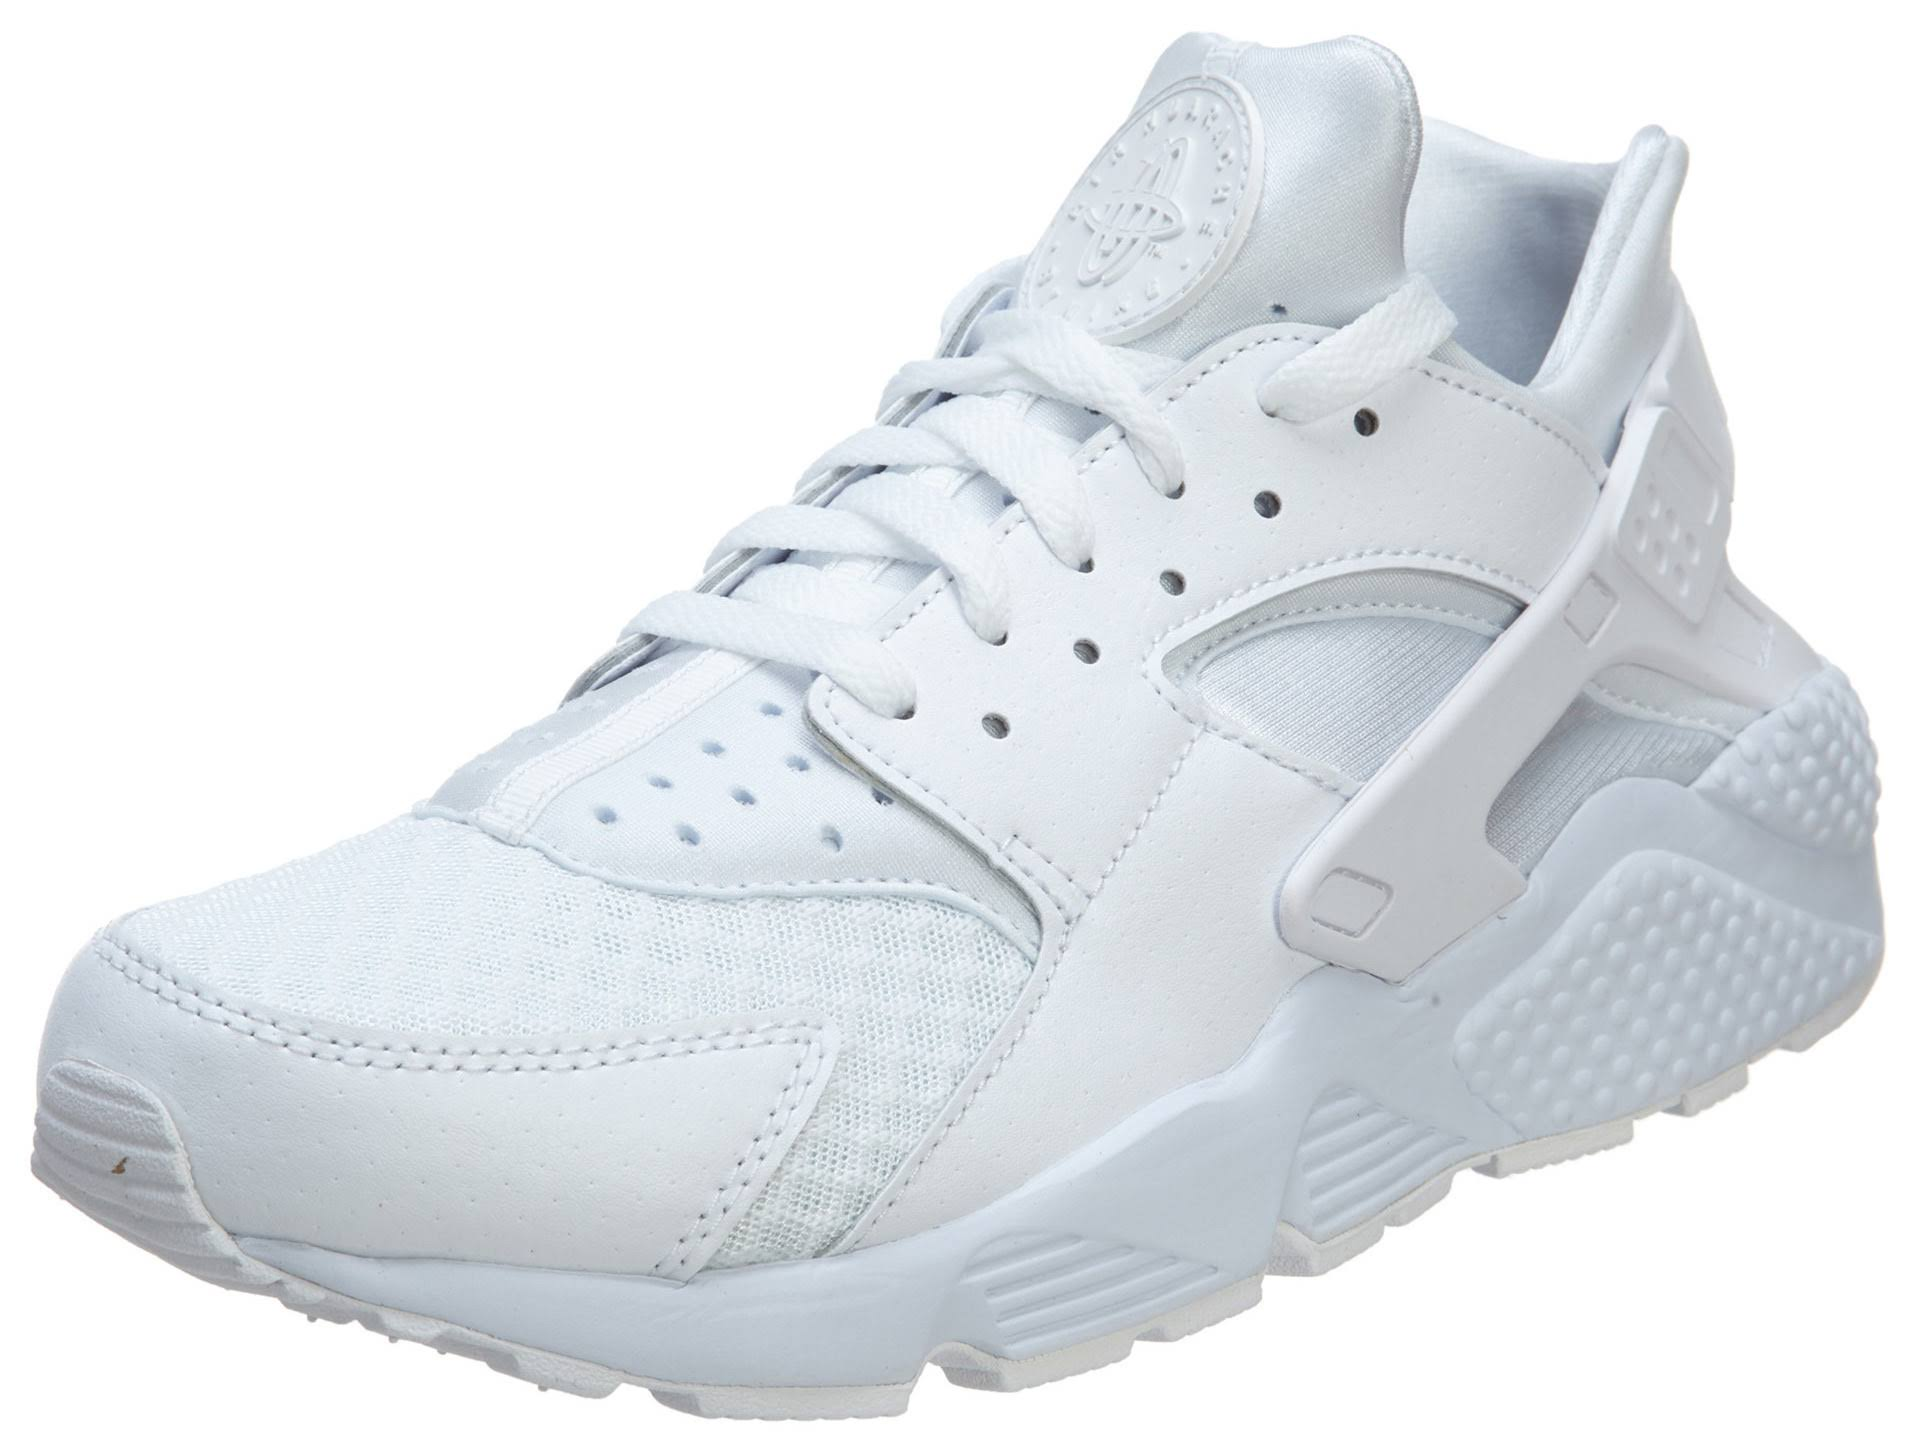 Air HuaracheBianco Nike Nike HuaracheBianco Air Nike Air TF13lKJc